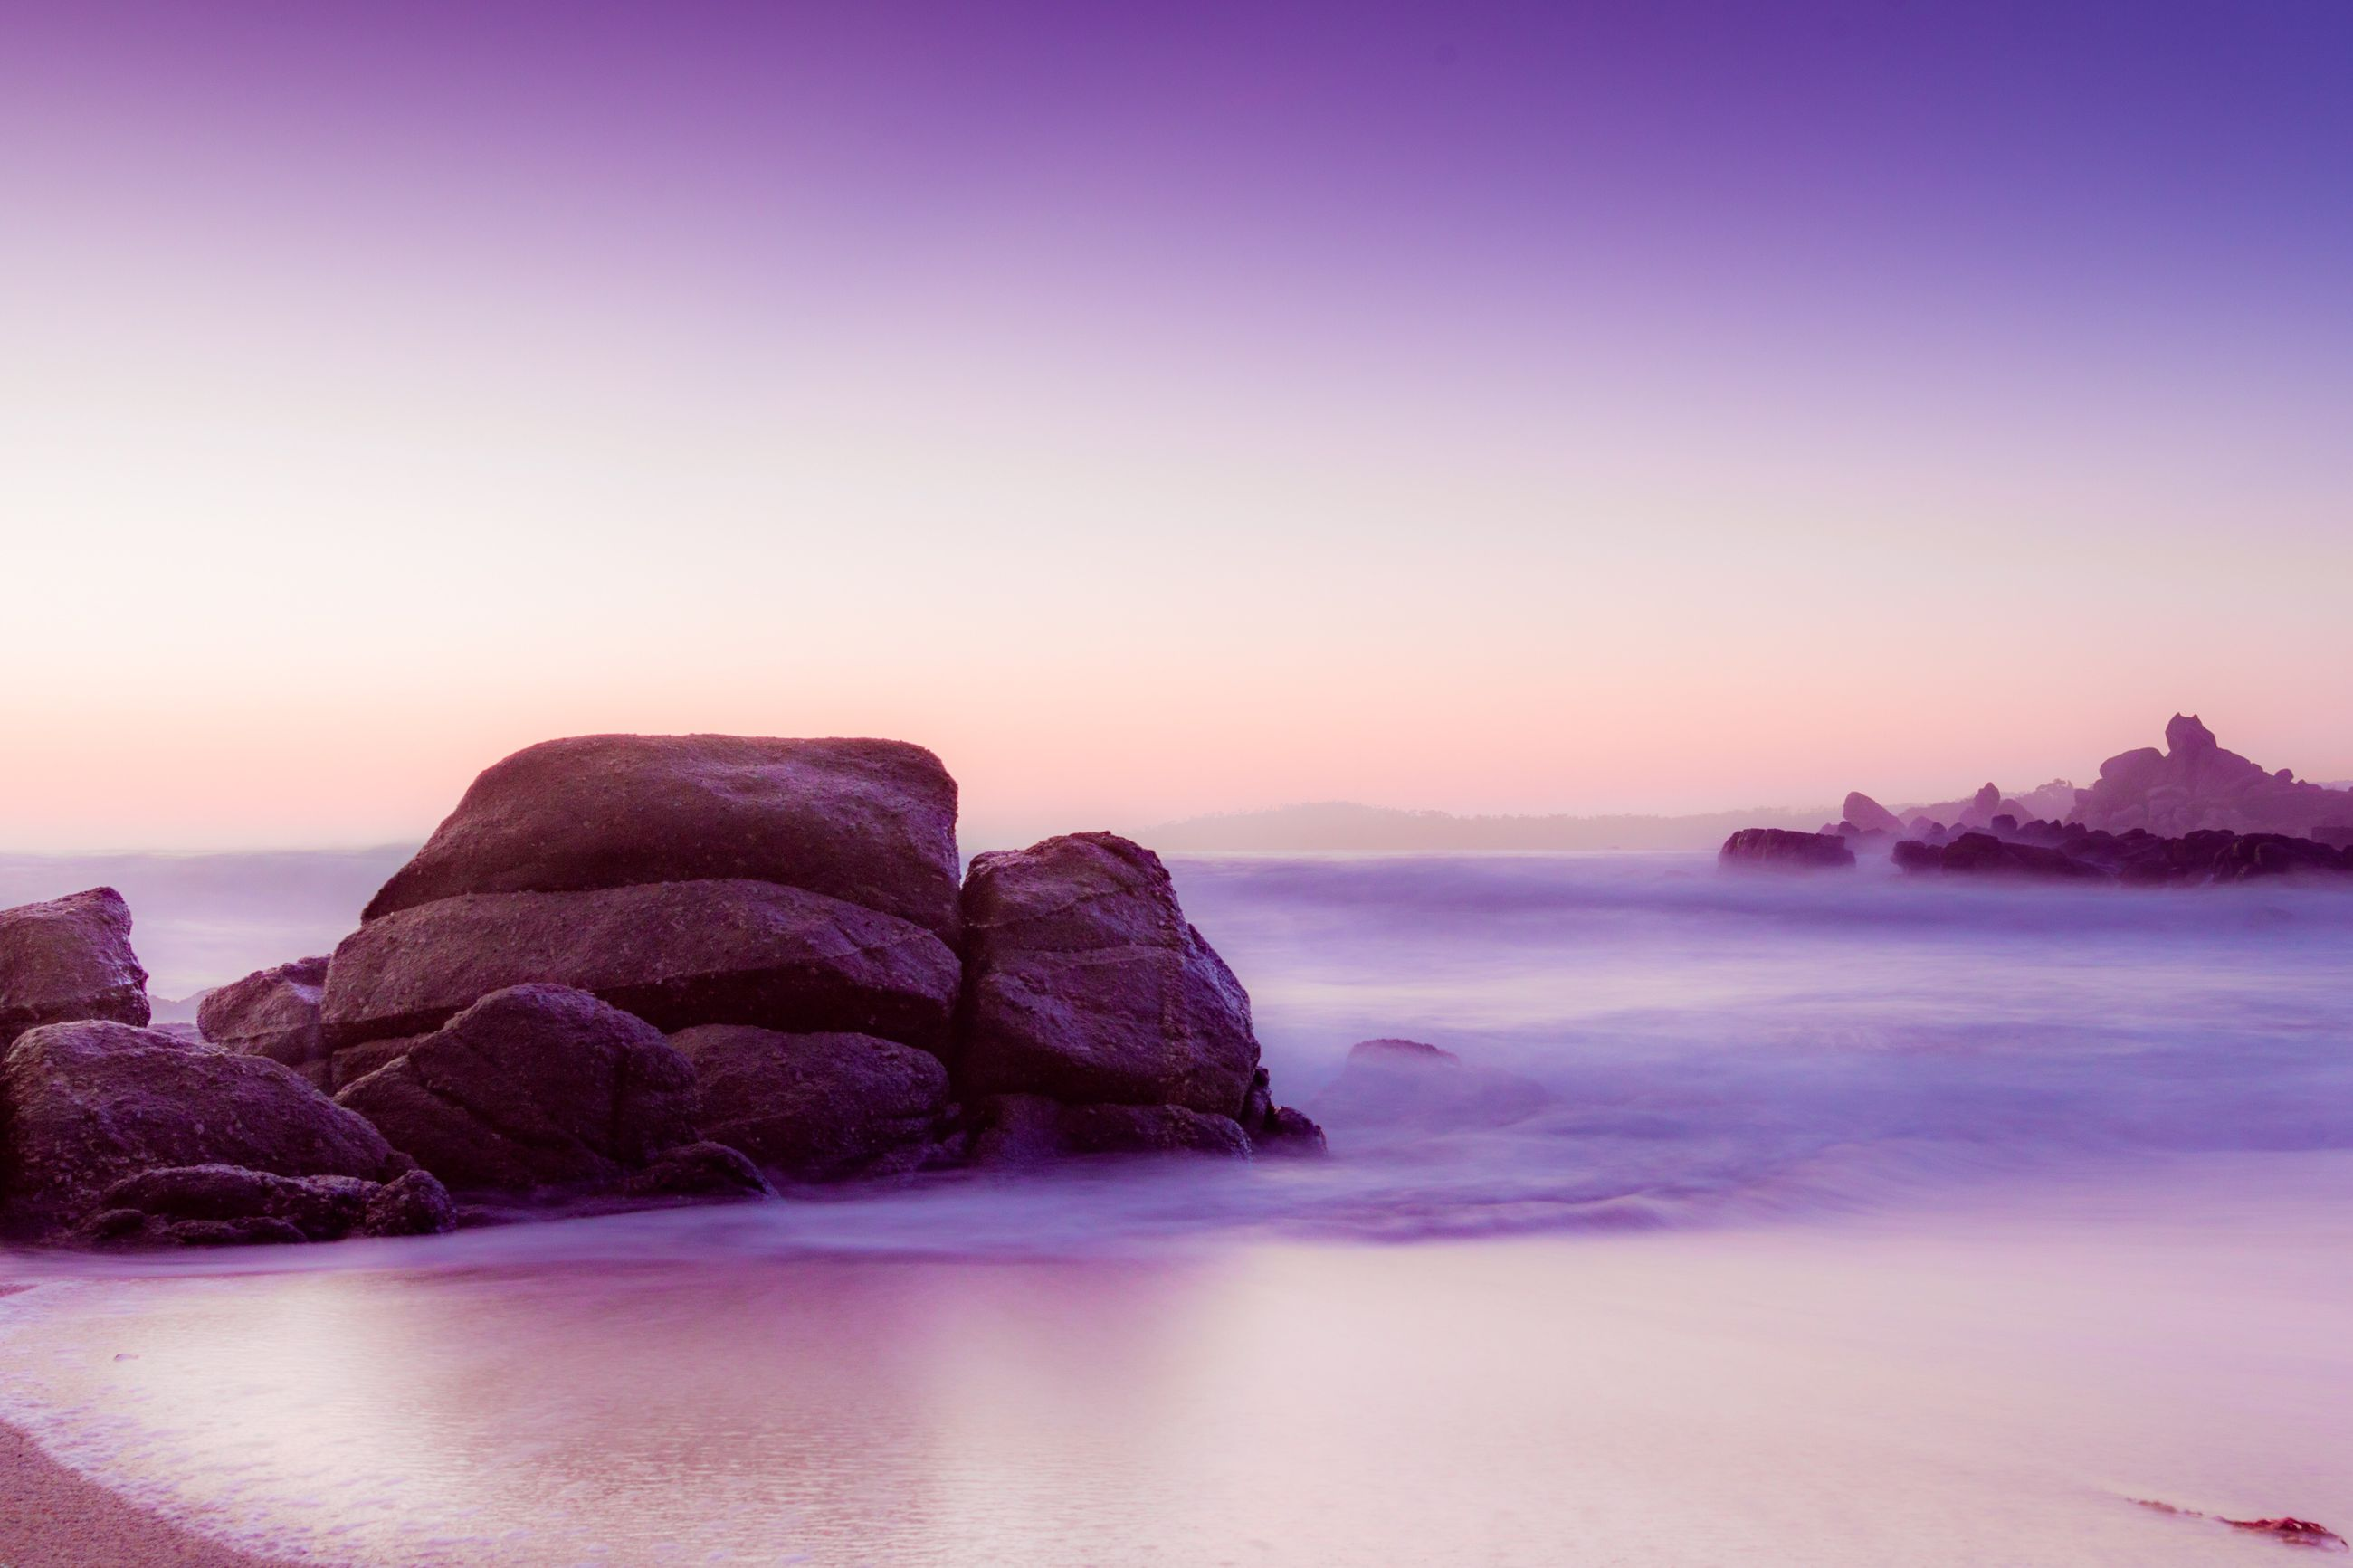 sea, nature, tranquility, scenics, sunset, tranquil scene, beauty in nature, water, purple, idyllic, sky, clear sky, rock - object, no people, outdoors, horizon over water, day